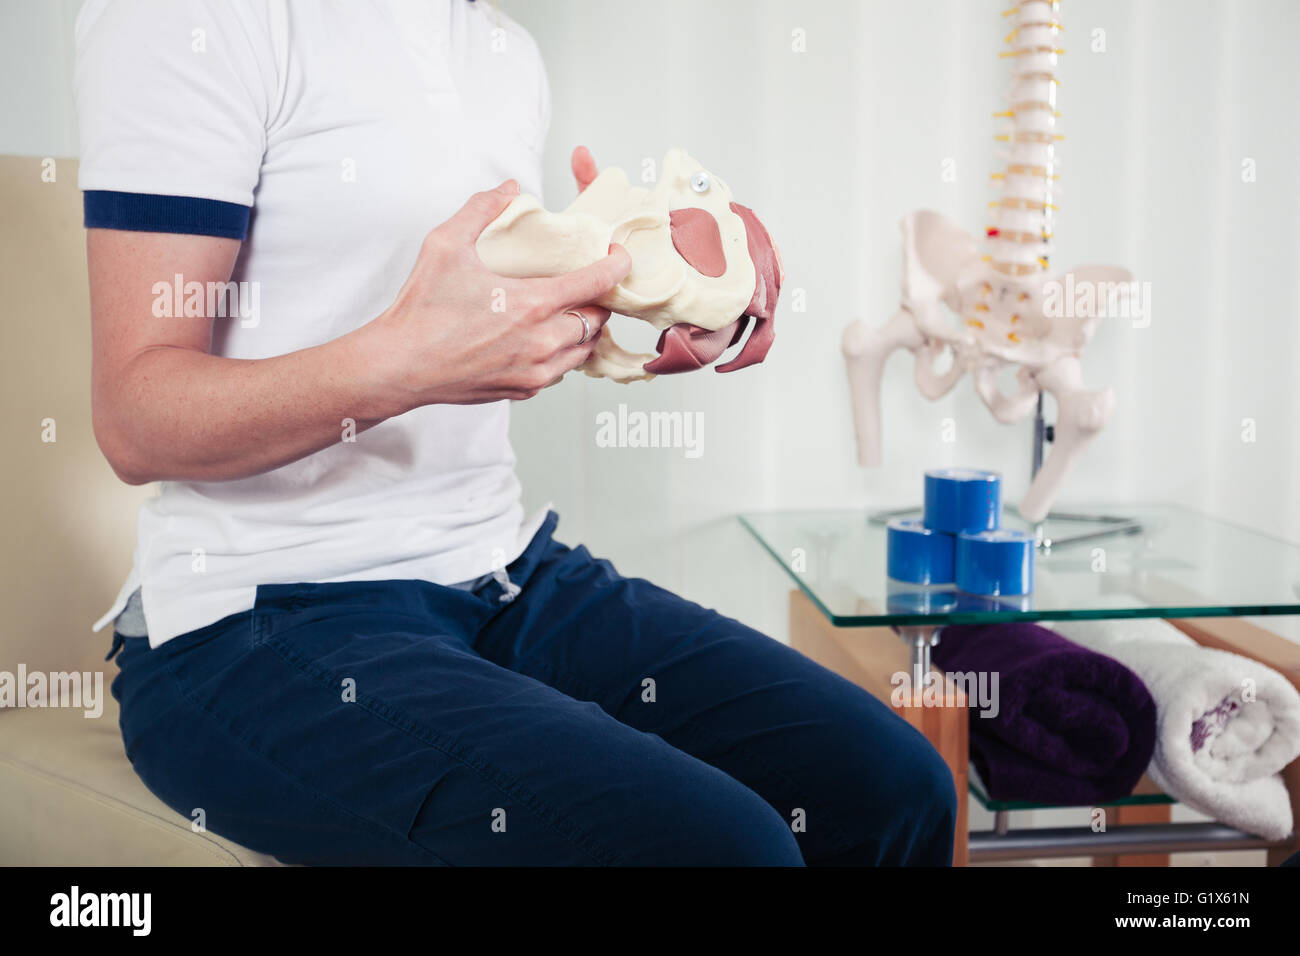 A physiotherapist is holding a model of a human pelvis - Stock Image